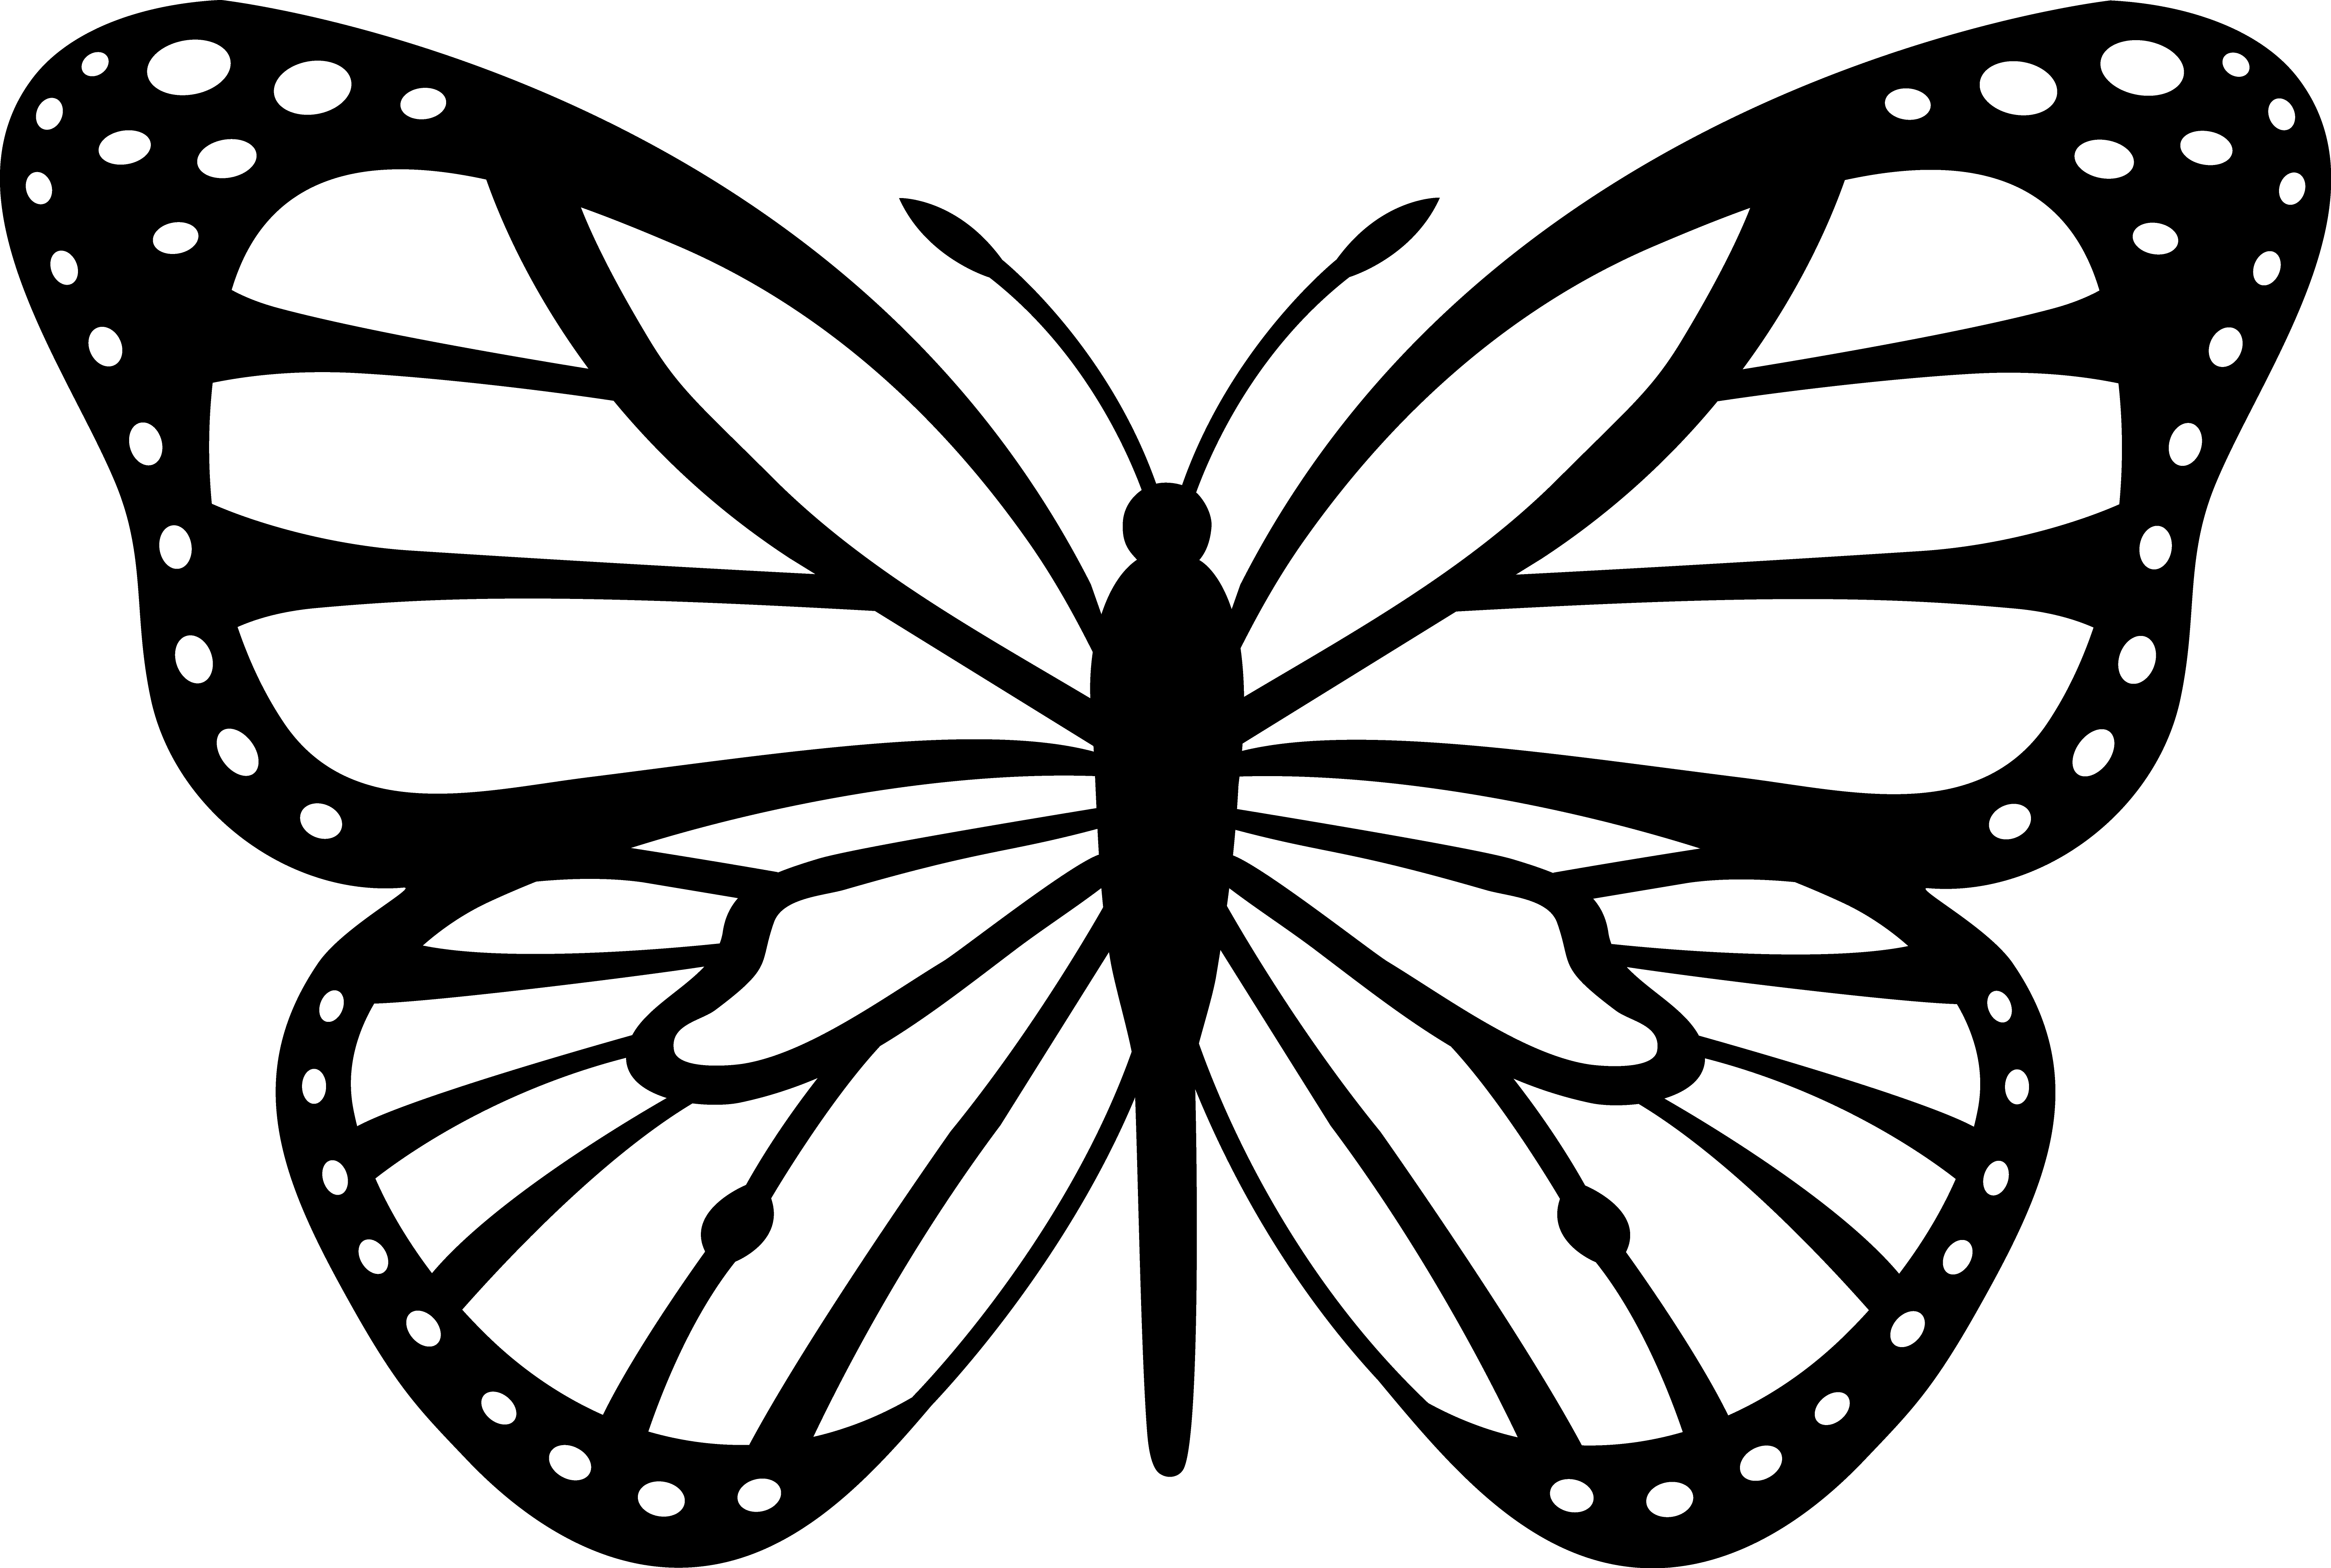 Monarch butterfly clipart free vector black and white download Monarch Butterfly Template. monarch butterfly template free ... vector black and white download